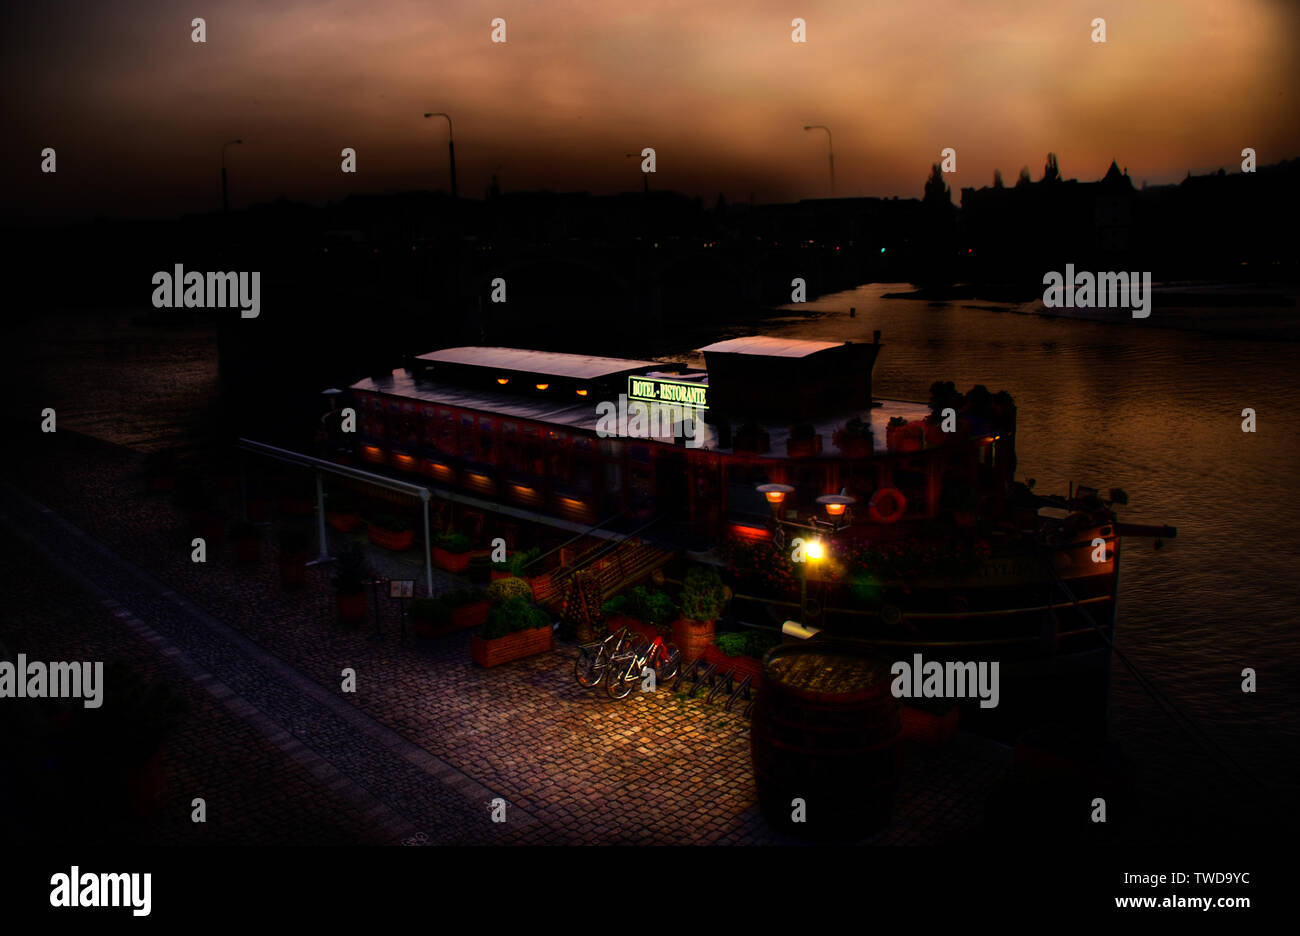 Prague, Czech Republic - October 8, 2008: Barge anchored to the river Moldava converted into a restaurant, night image digitally retouched.... - Stock Image